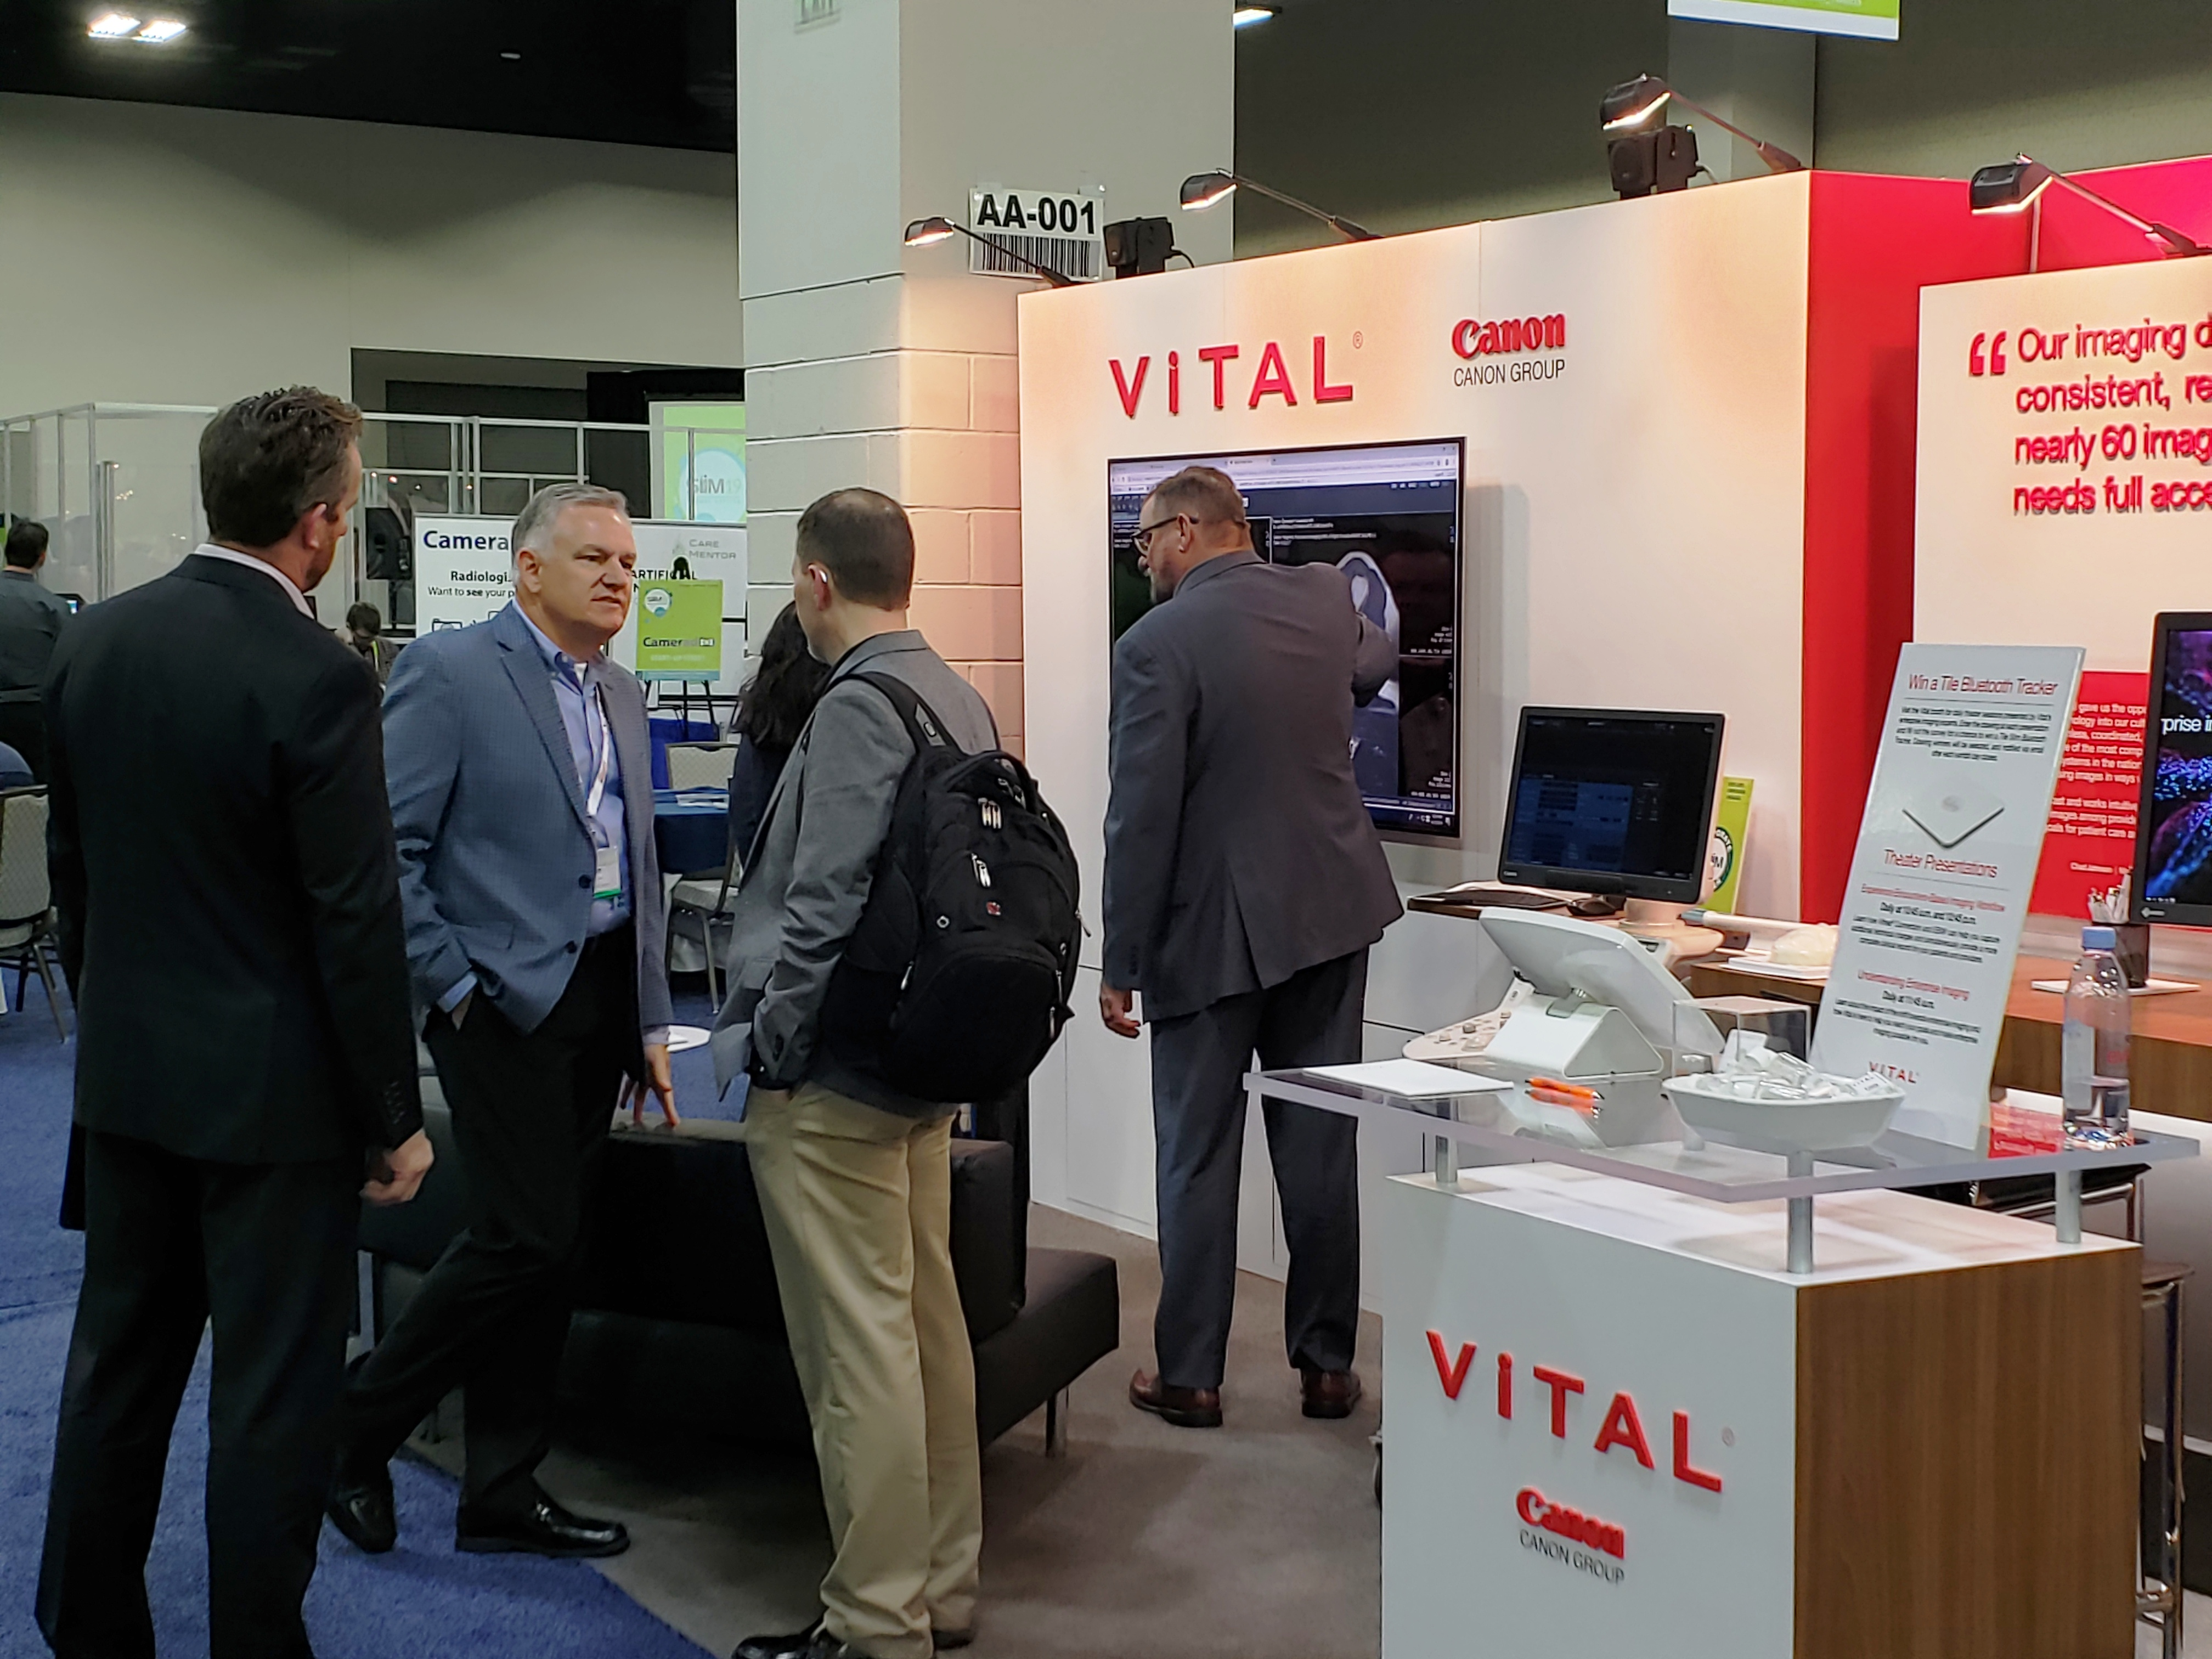 Vital Images features optical camera as important part of enterprise imaging.